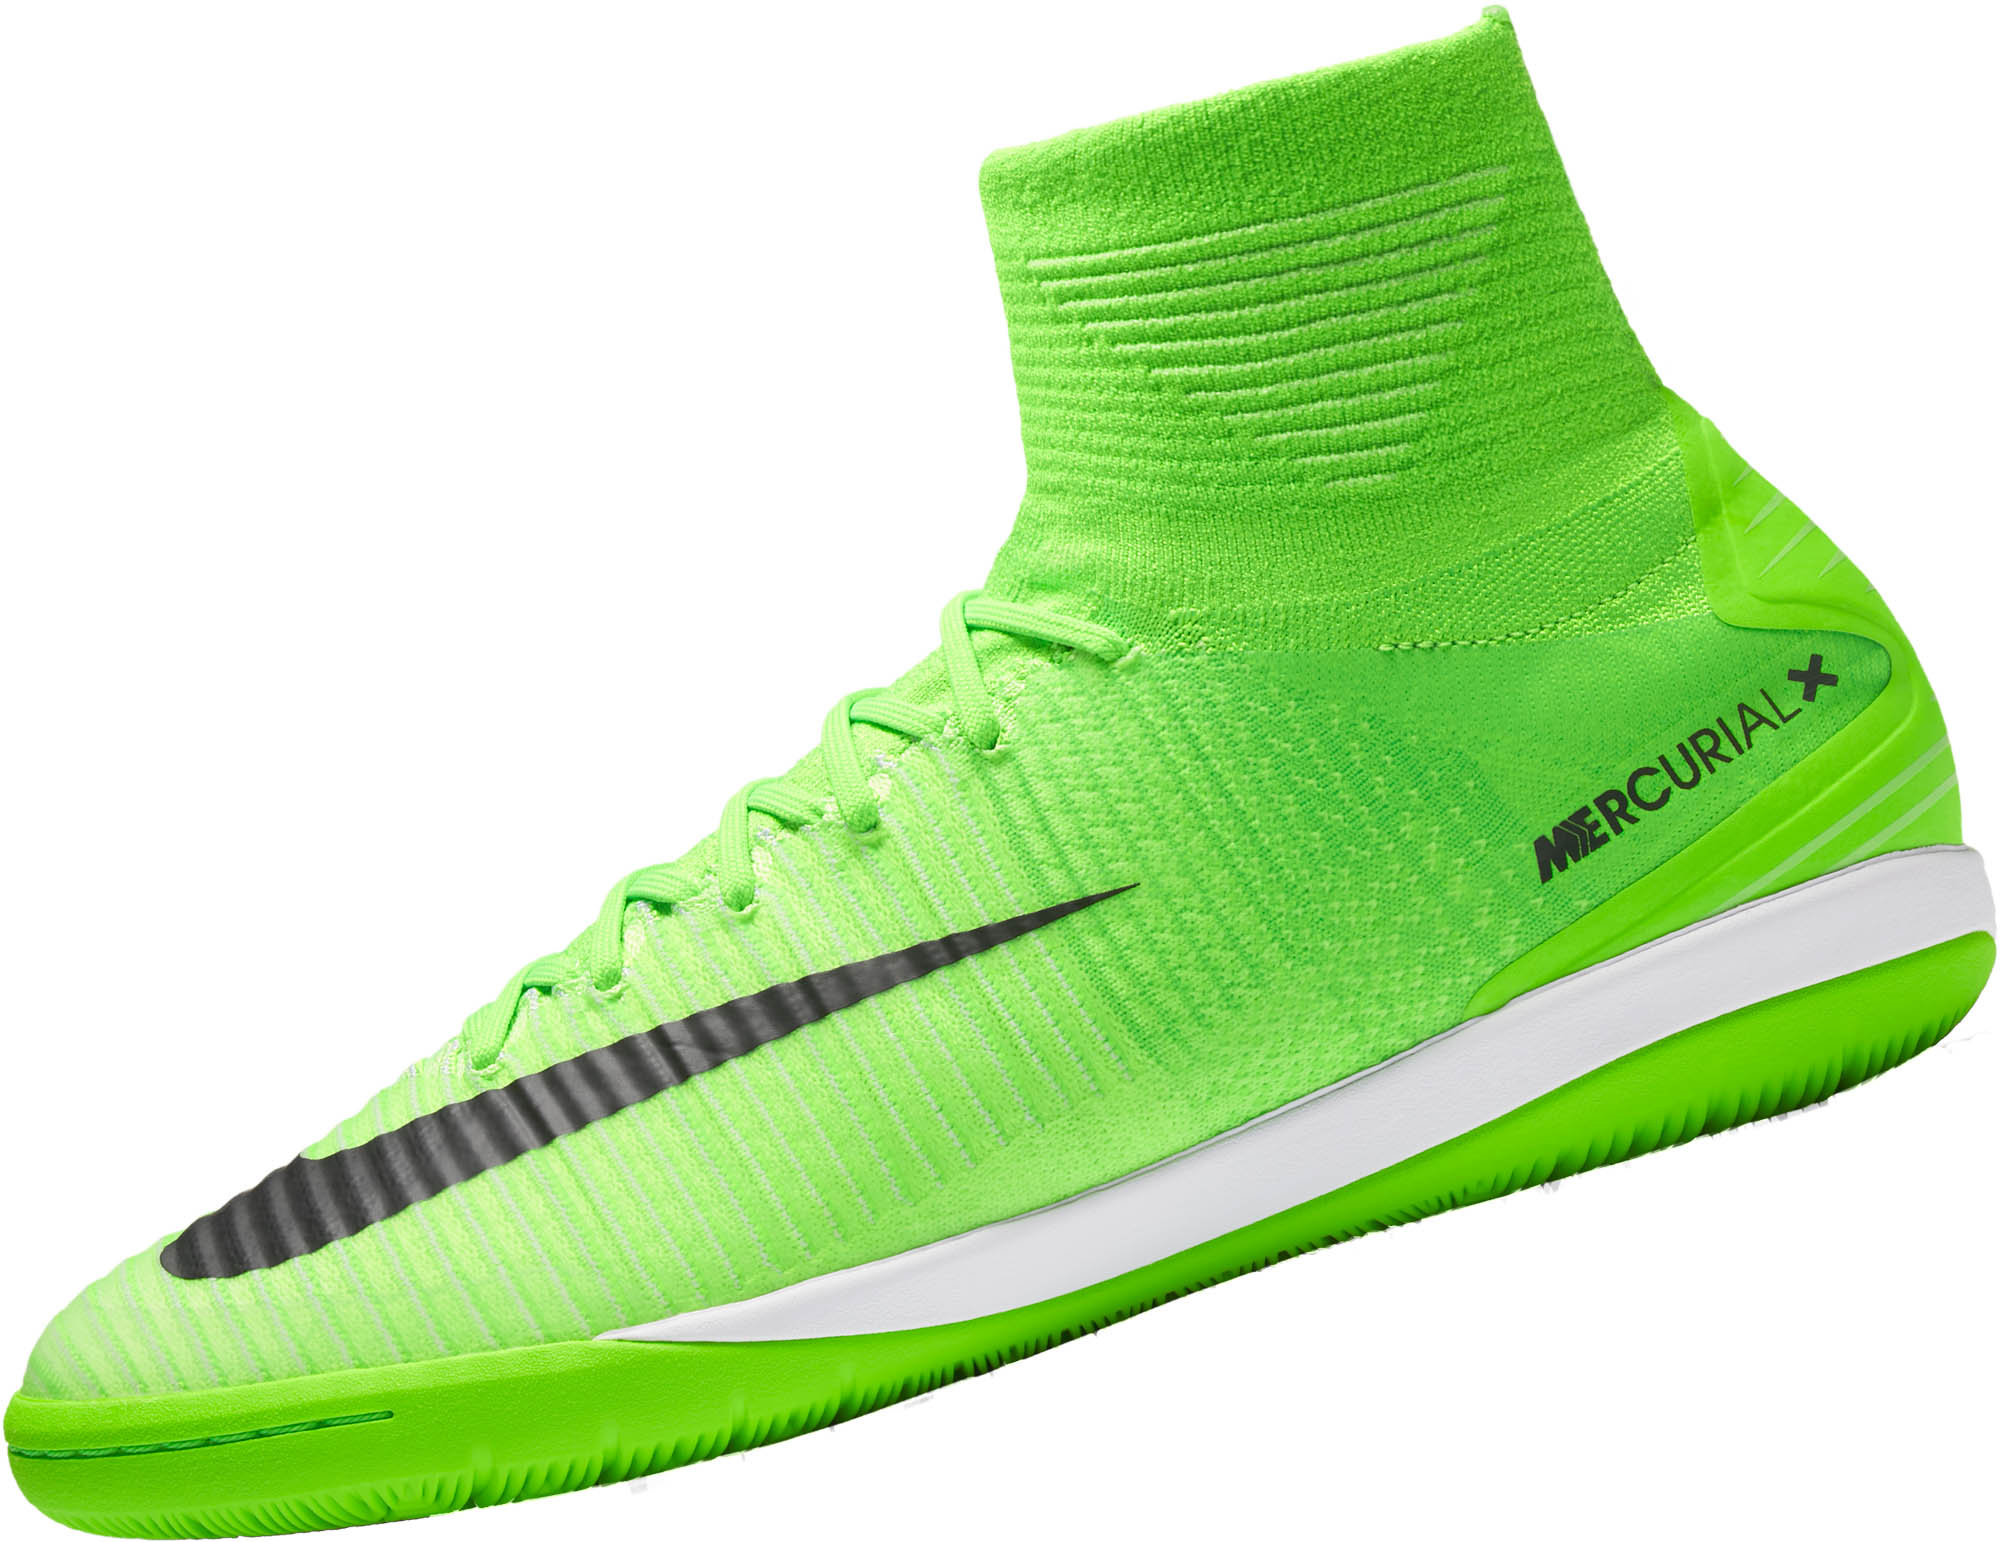 3ec3a8e2fc3 Nike MercurialX Proximo II IC – Electric Green Black